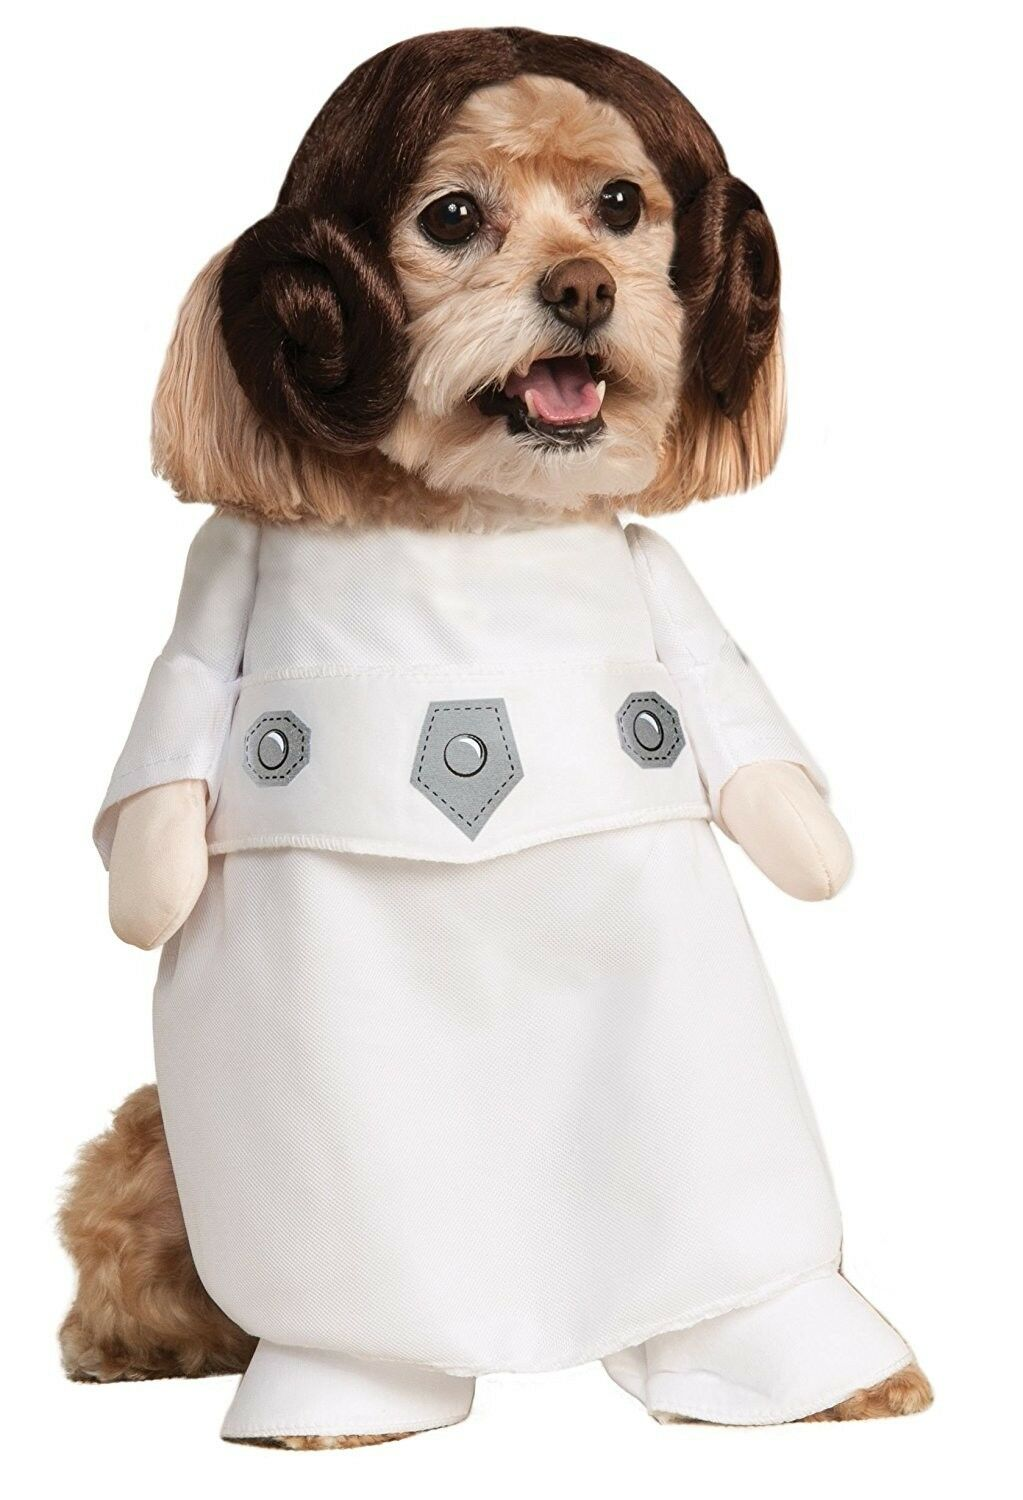 Rubies Costume Star Wars Collection Pet Costume, Princess Leia, Large